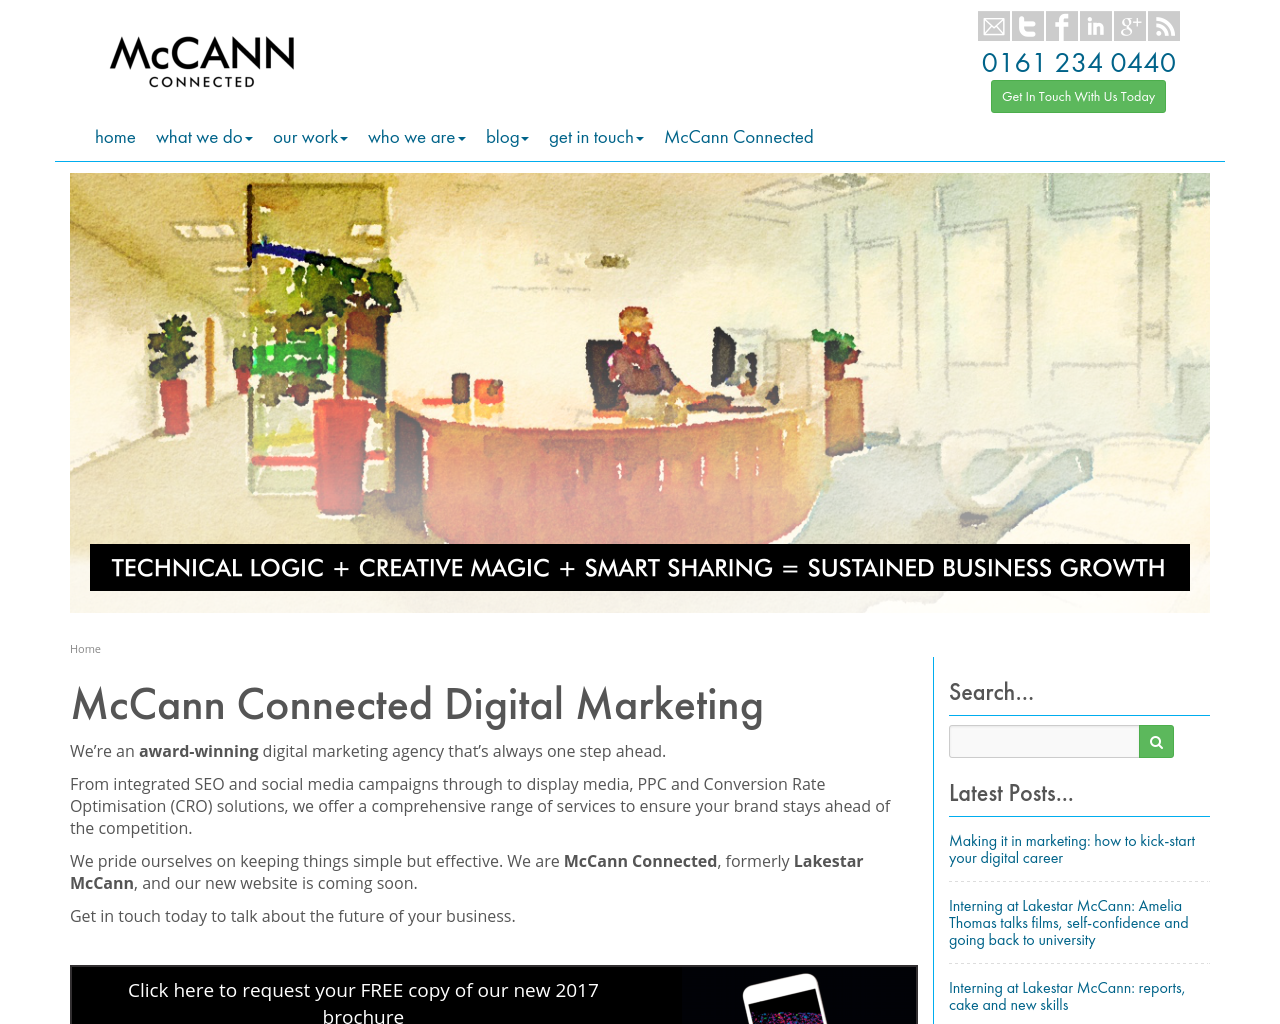 McCann-Connected-Advertising-Reviews-Pricing